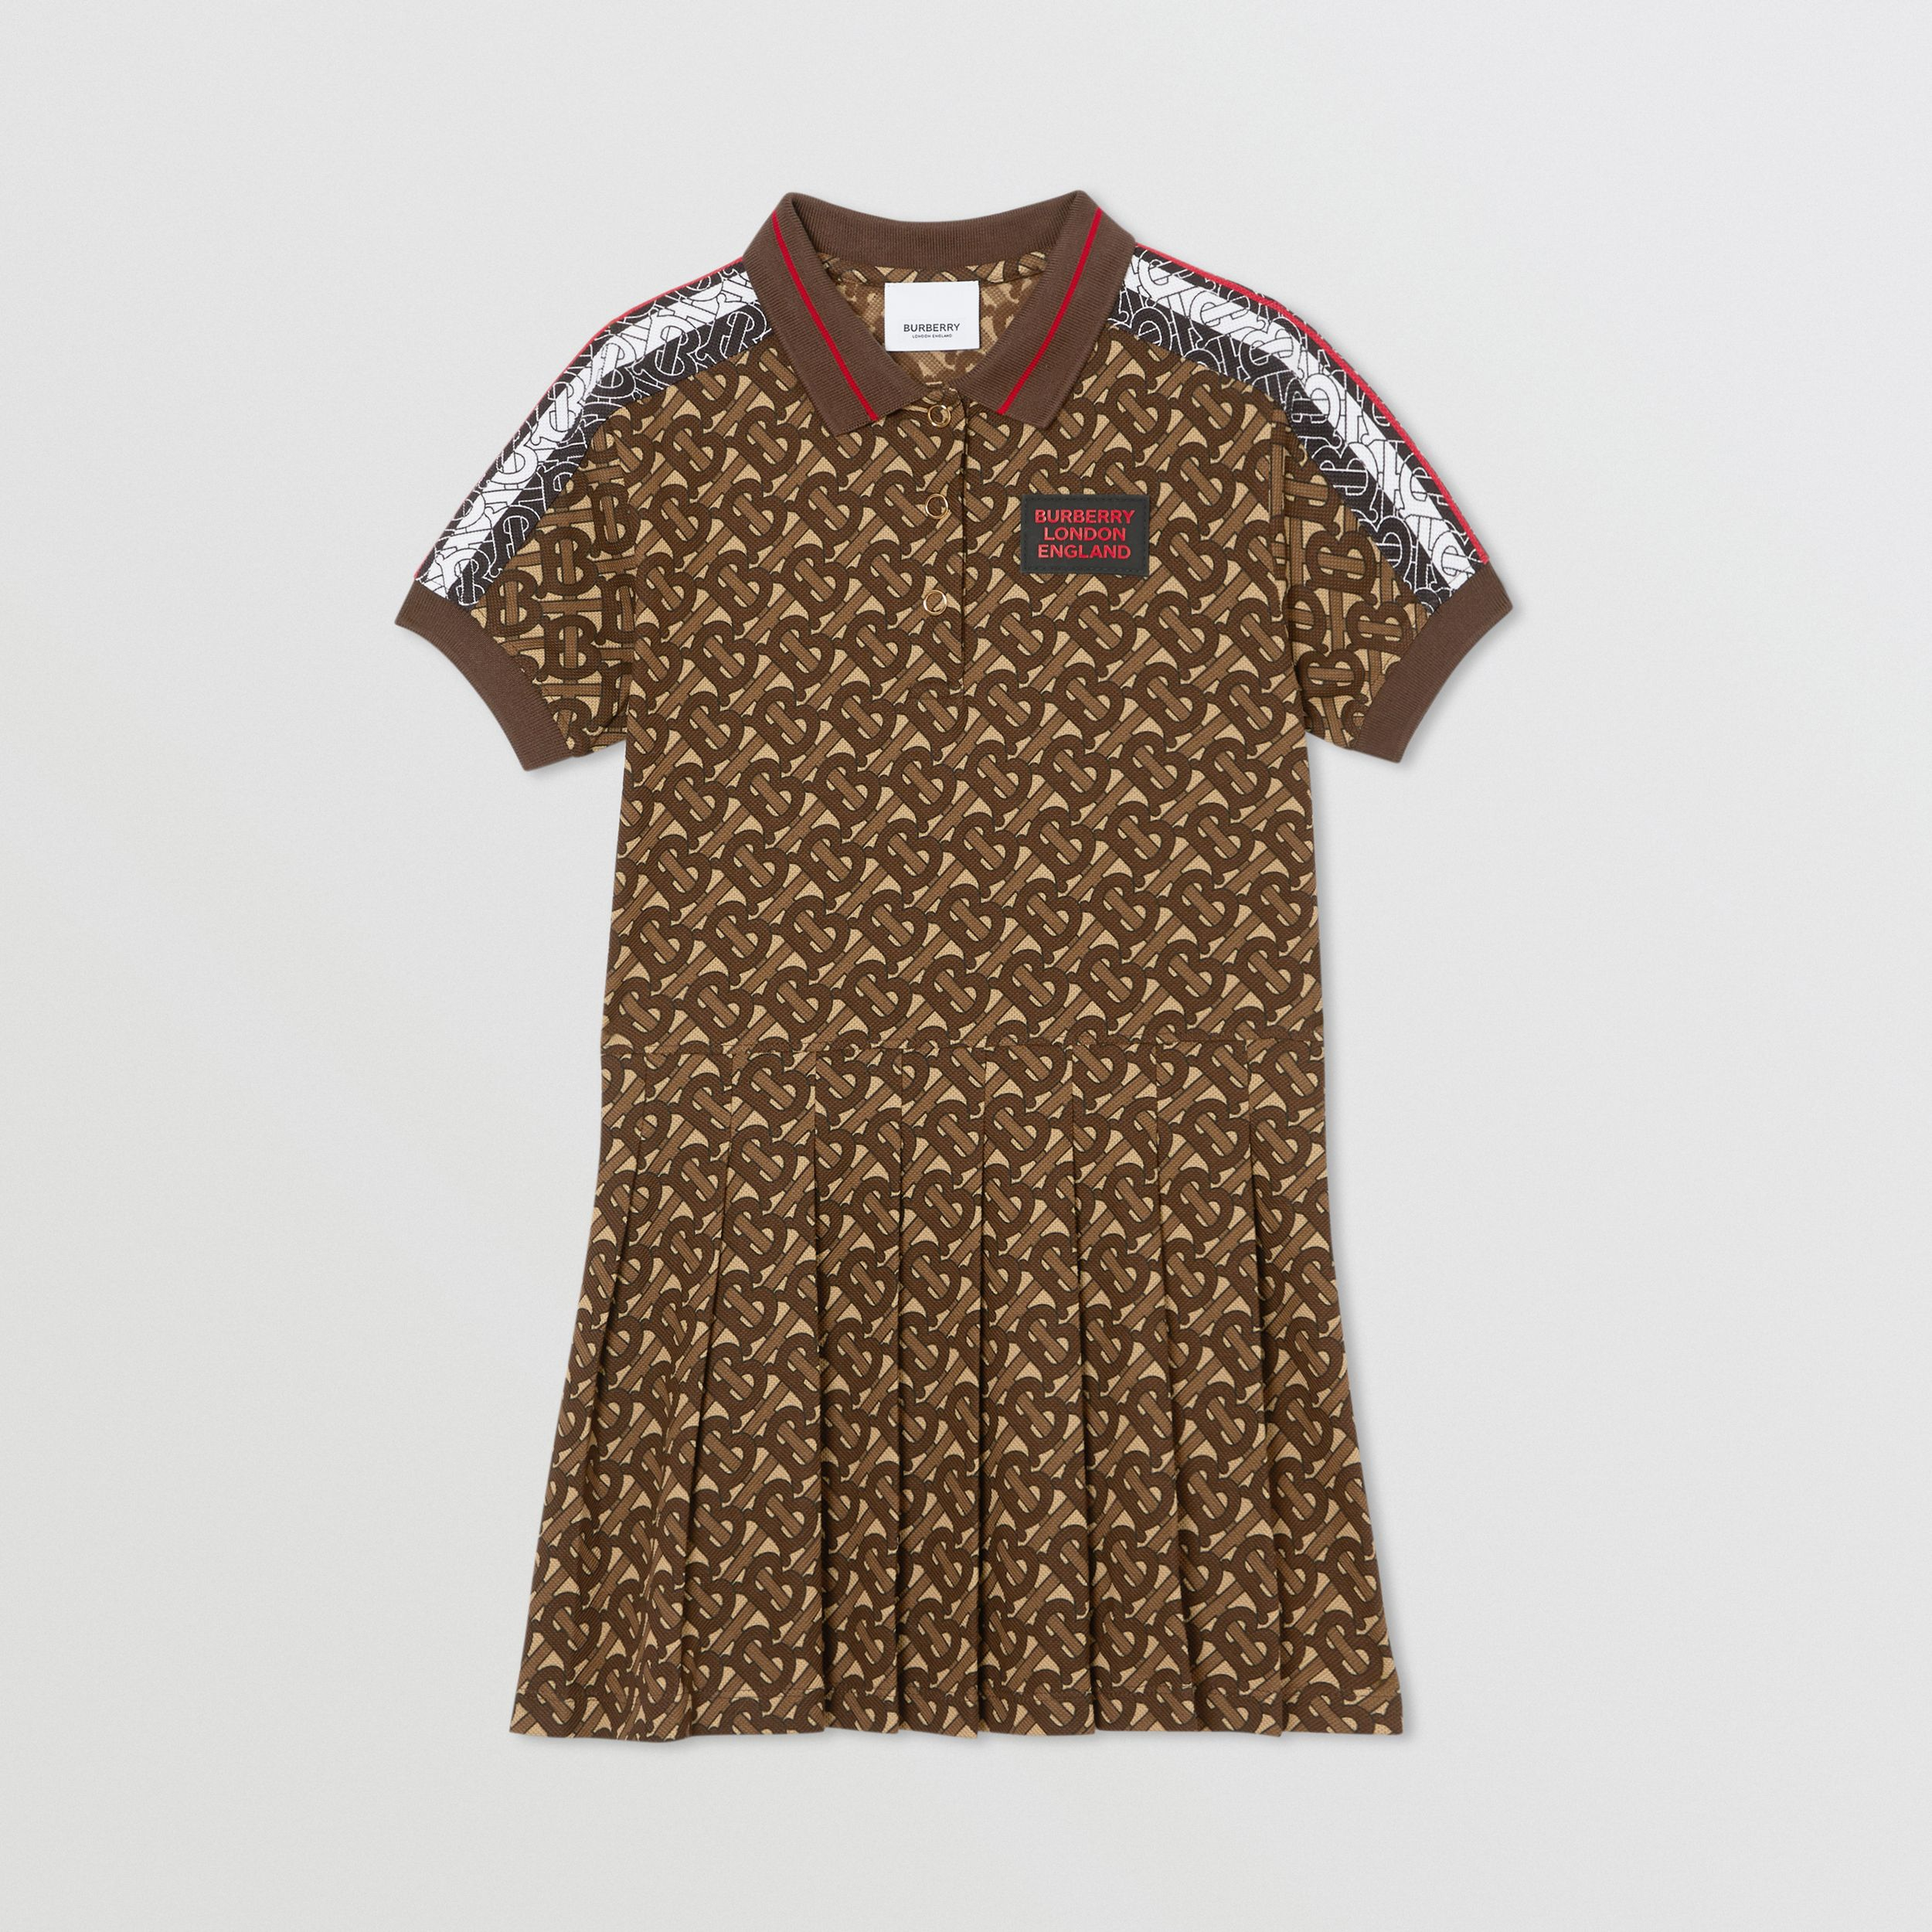 Monogram Stripe Print Cotton Polo Shirt Dress in Bridle Brown | Burberry - 1